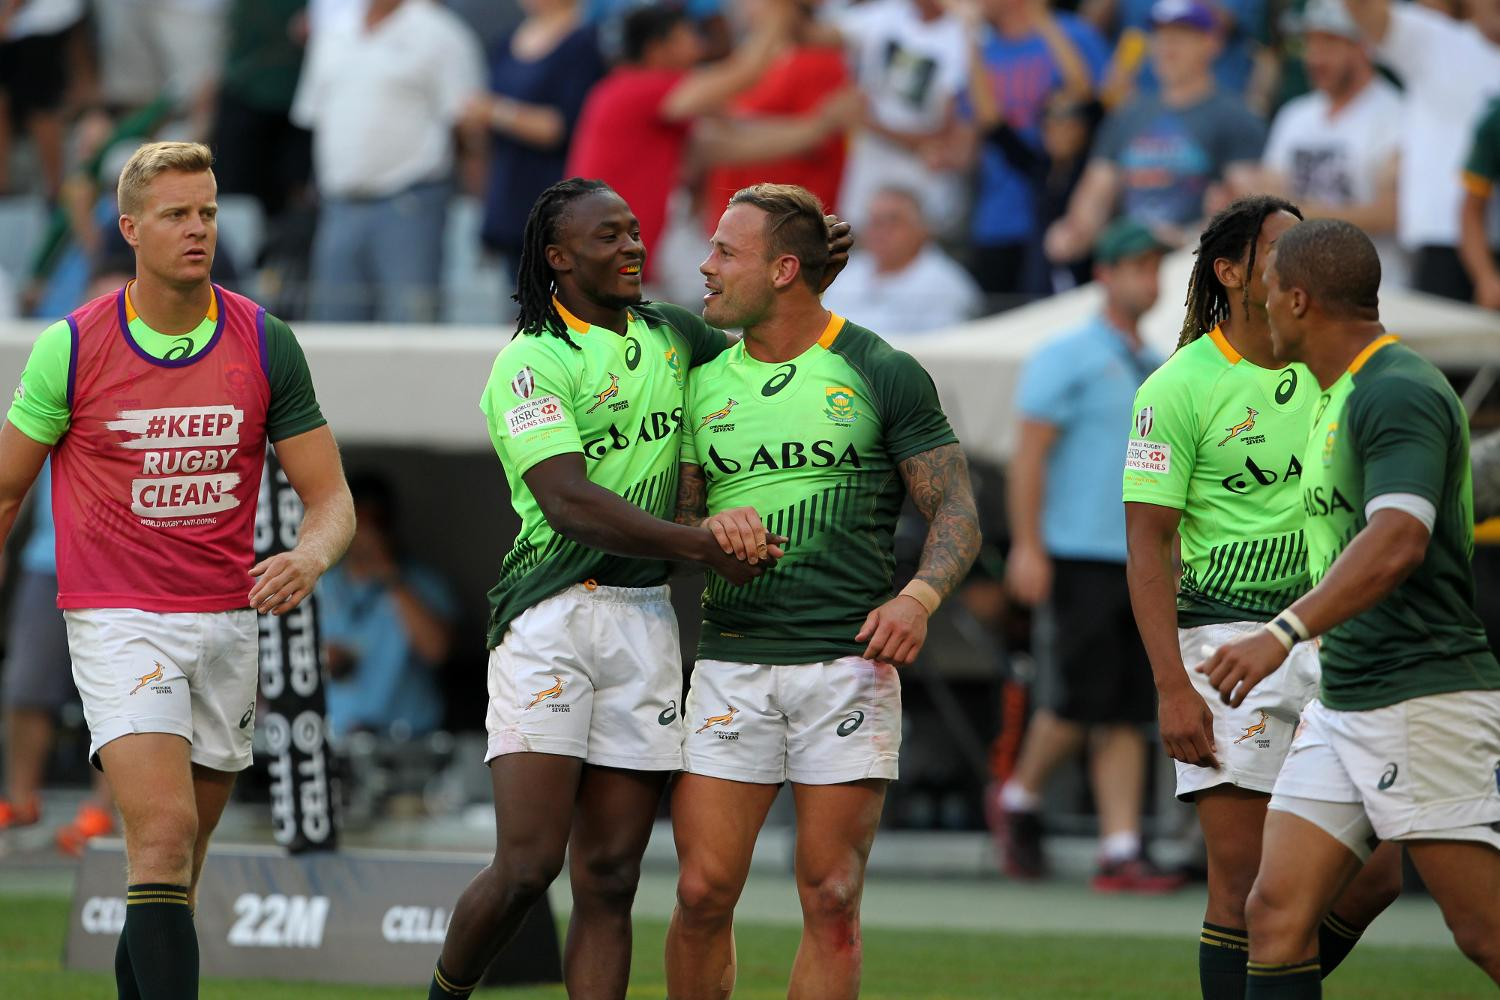 HSBC Sevens World Series: a Cape Town vince il Sud Africa